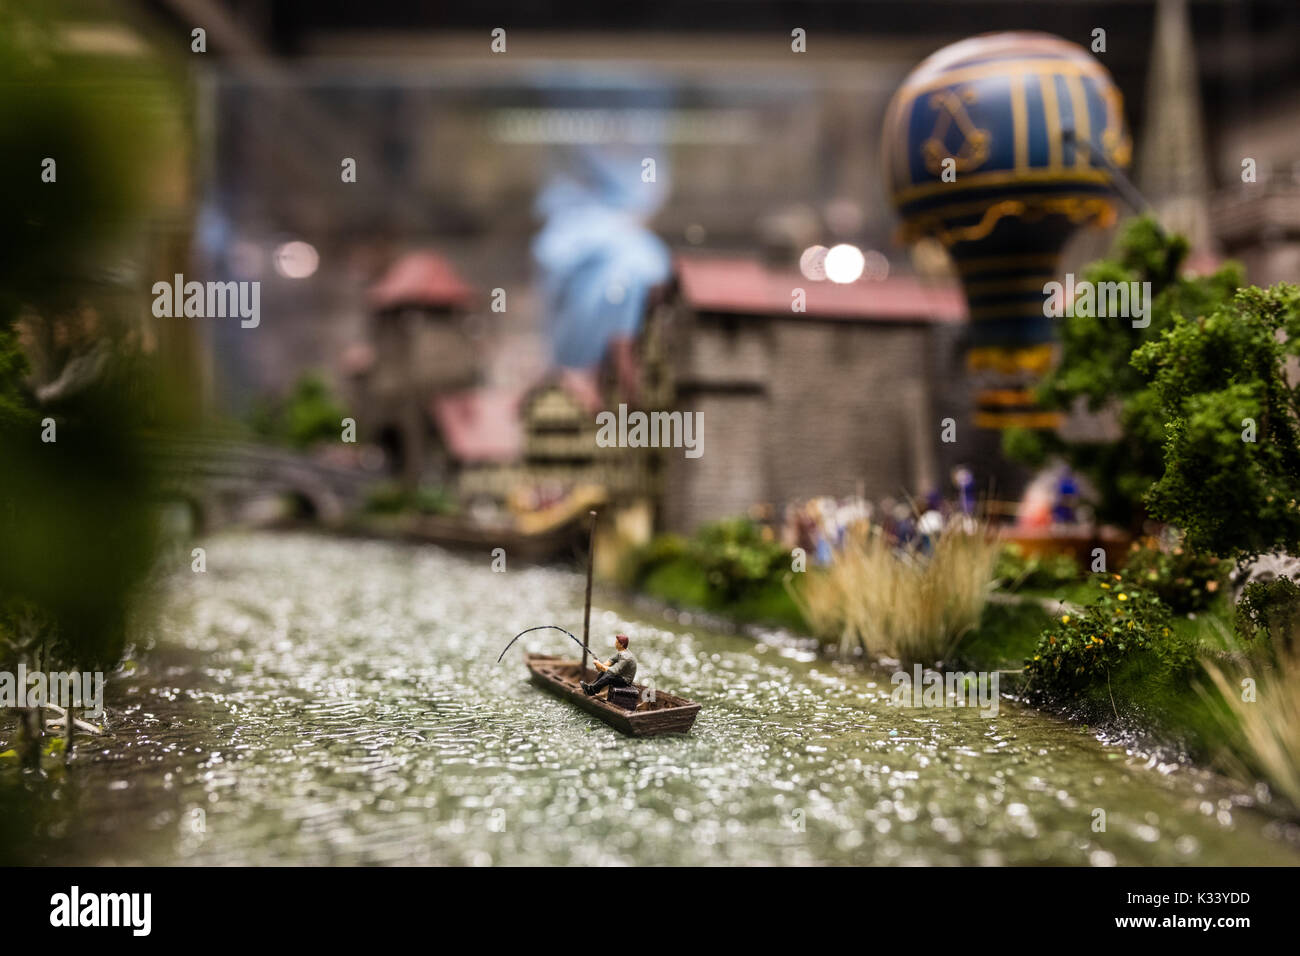 A visit inside the Miniatur Wunderland the largest model railway in the world Hamburg Northern Germany Europe - Stock Image